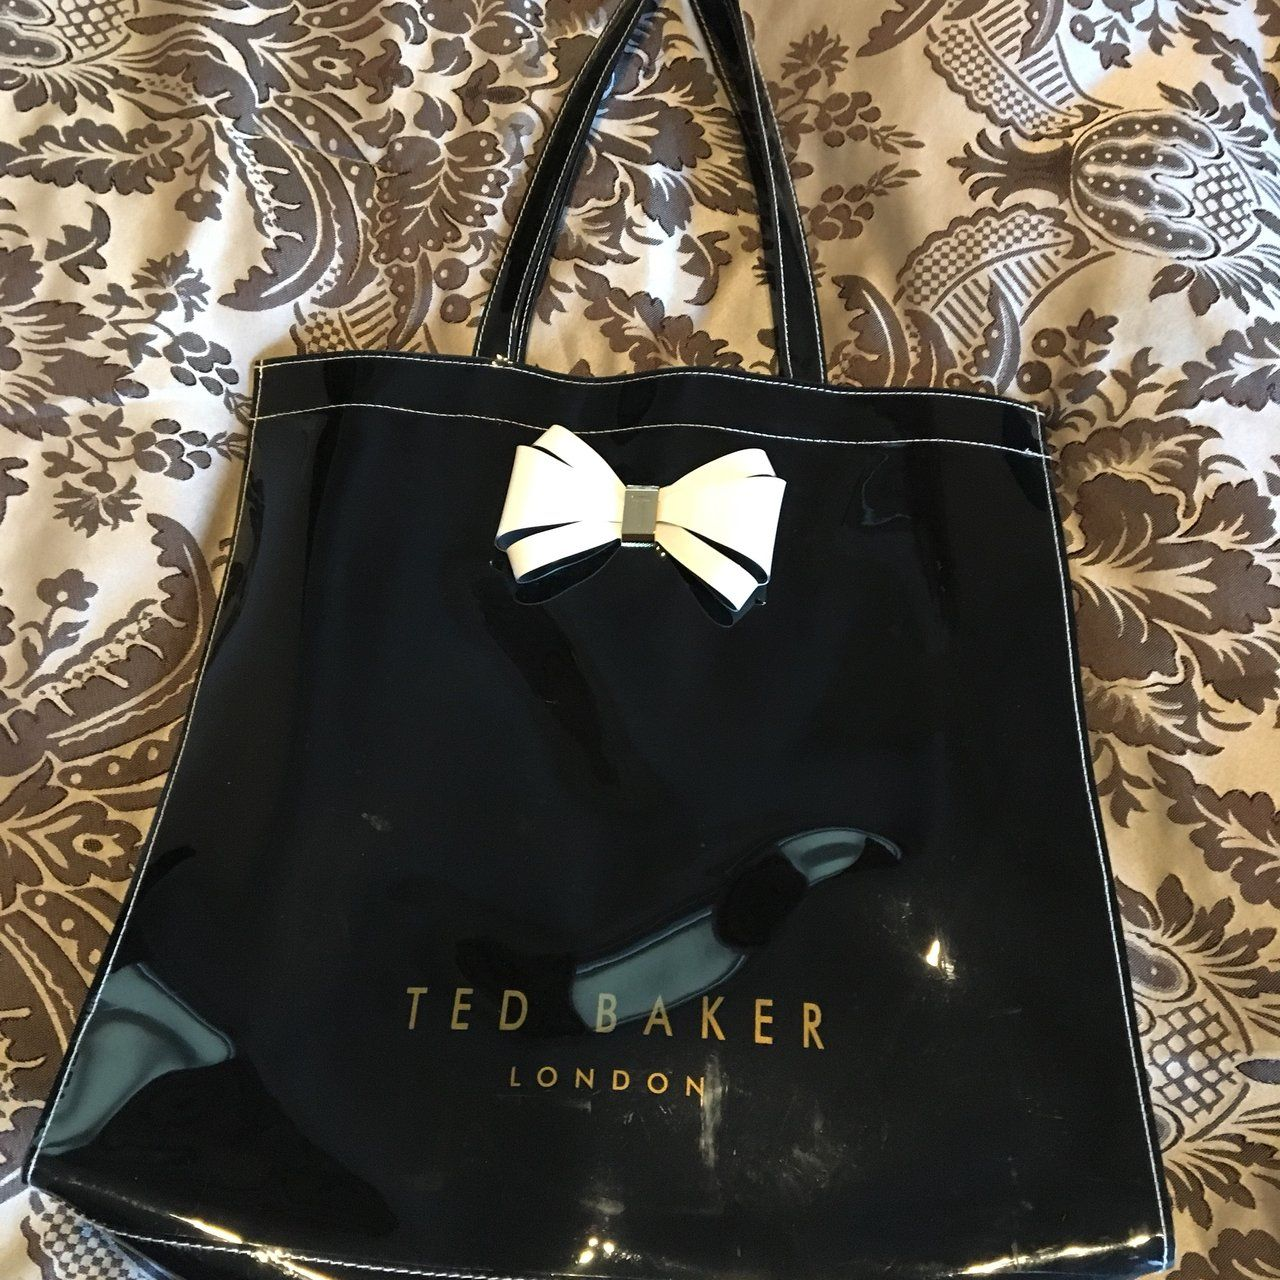 e330170ef709 REDUCED TO CLEAR Black ted baker bag - barely used so - Depop